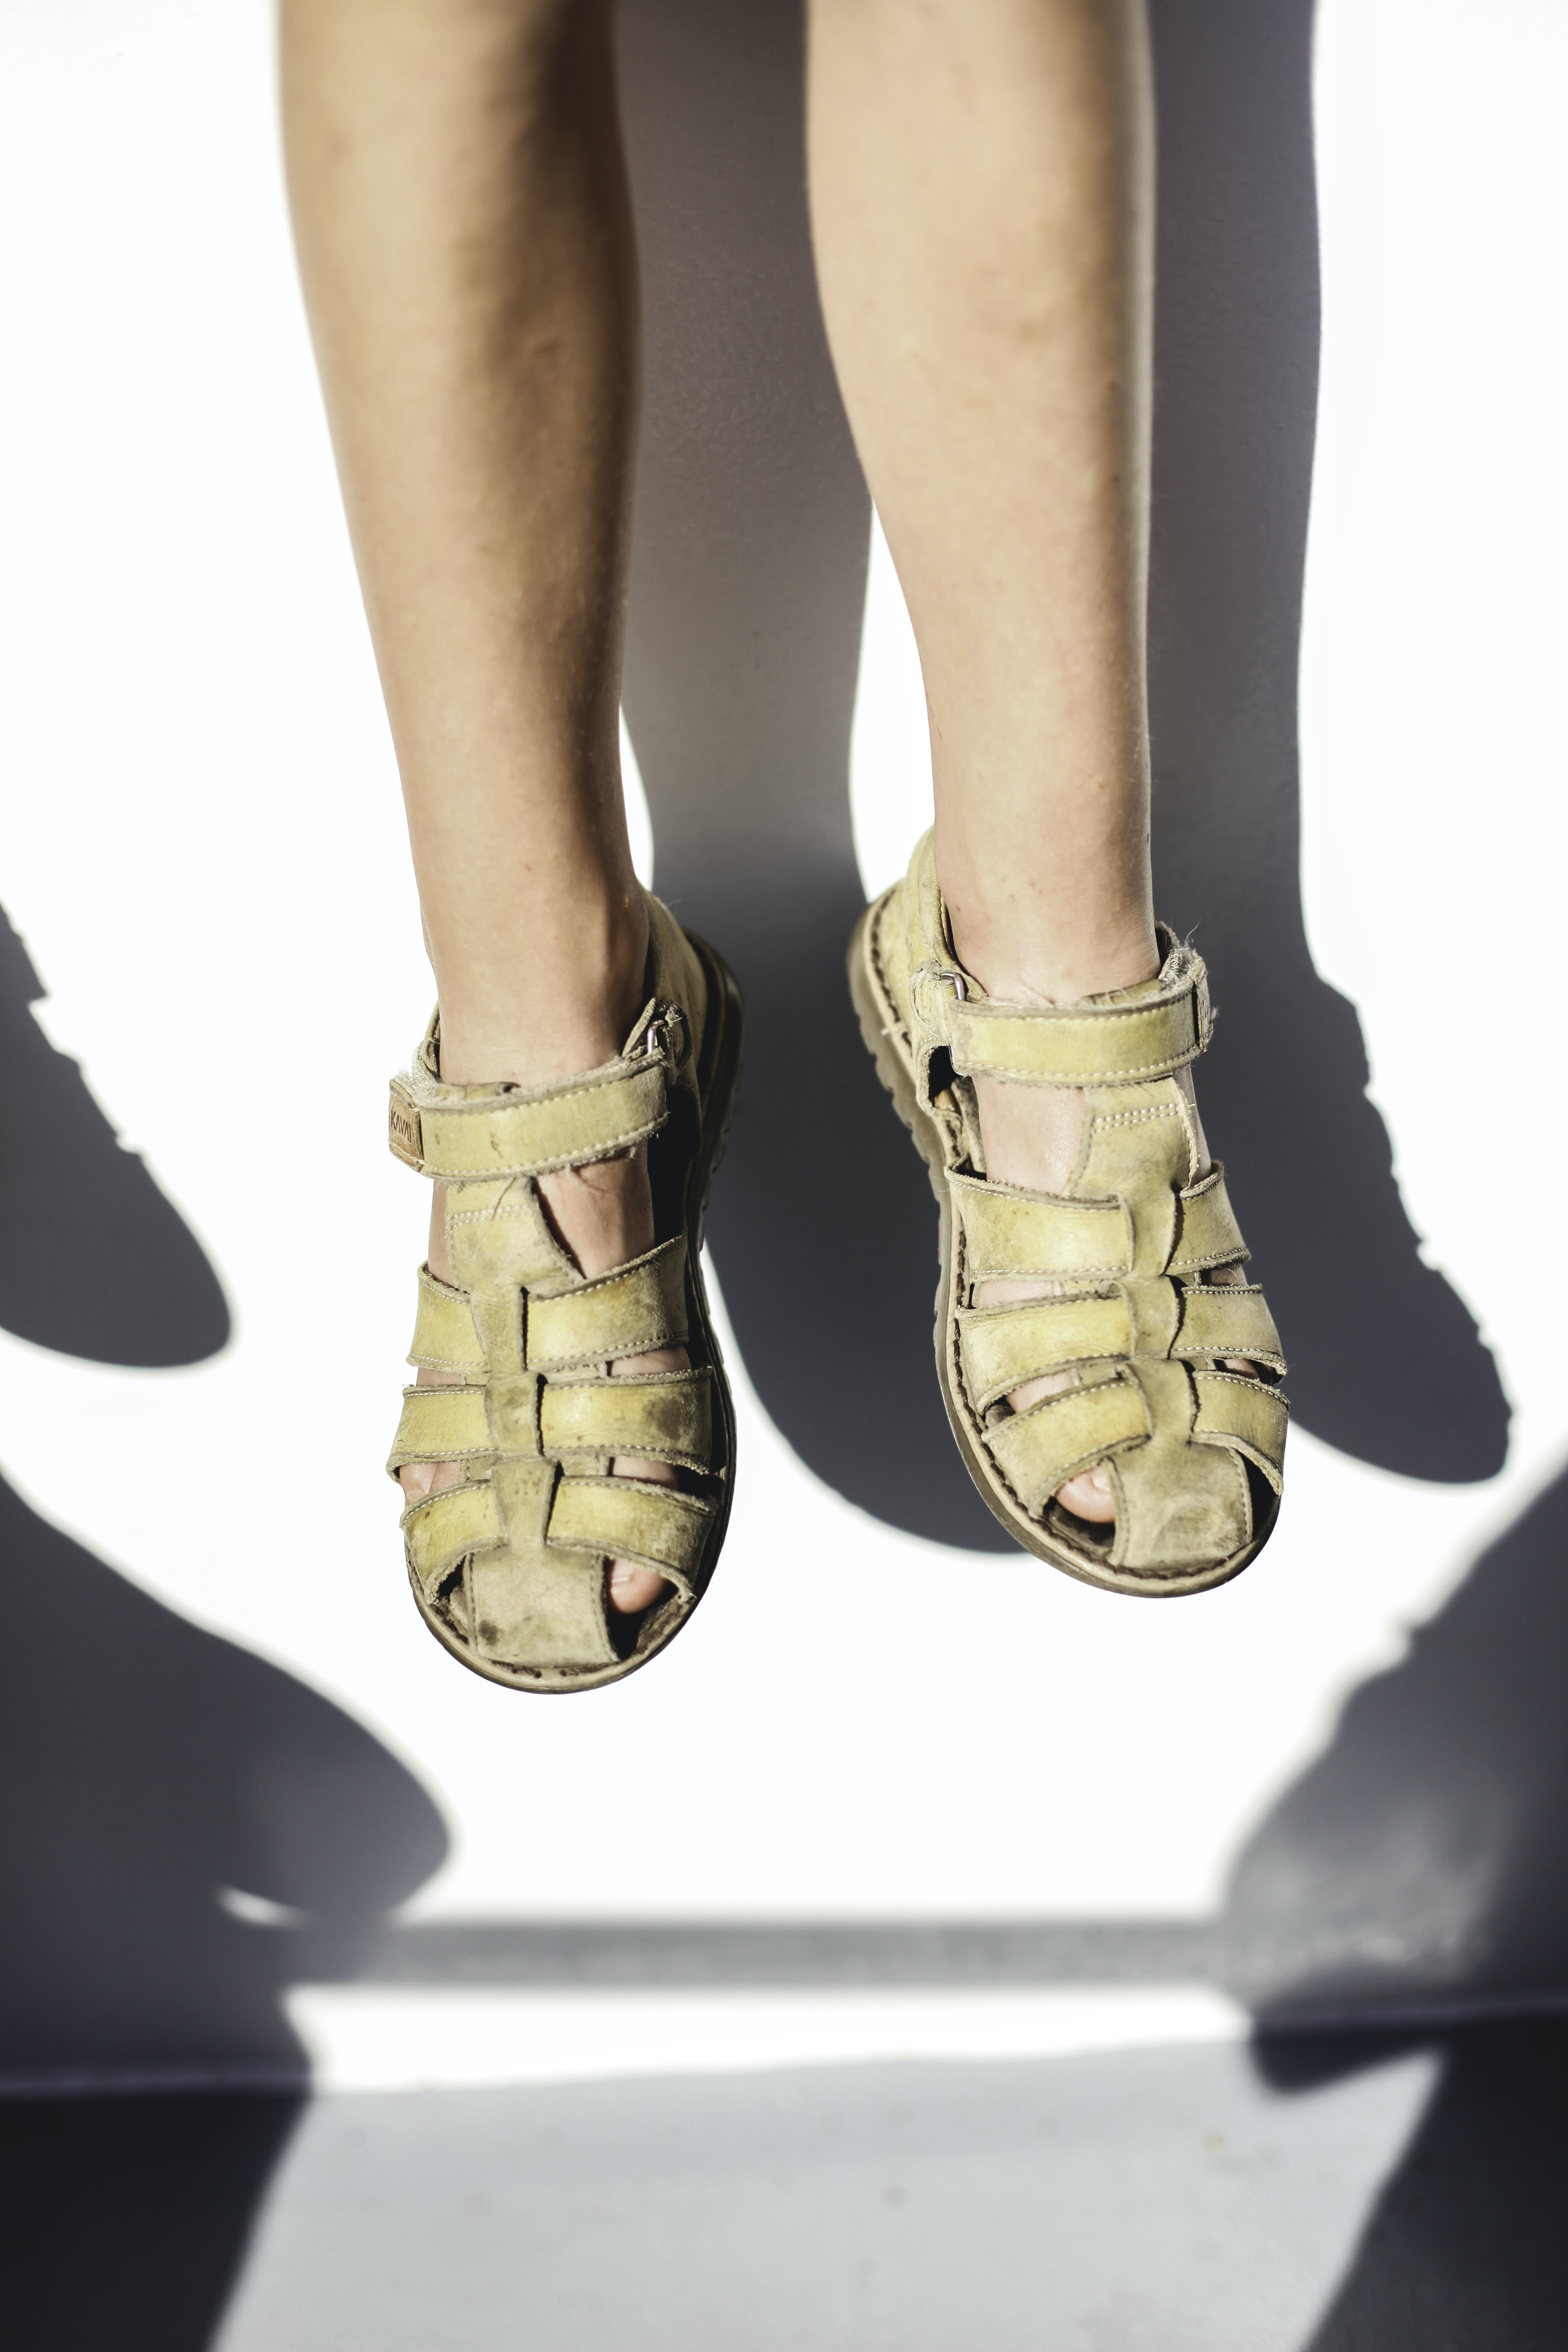 person wearing pair of sandals